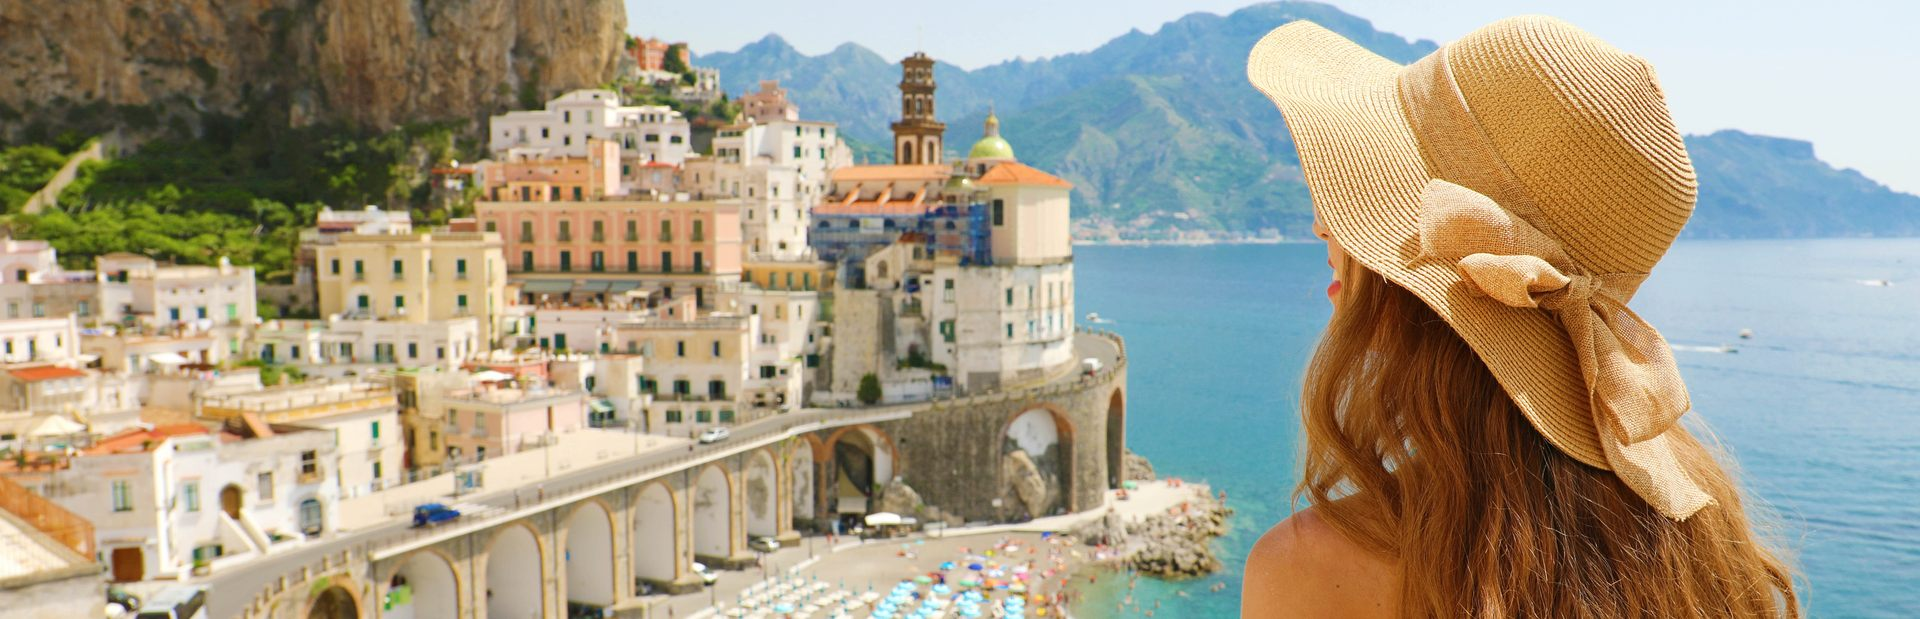 Things to see & do in the Amalfi Coast